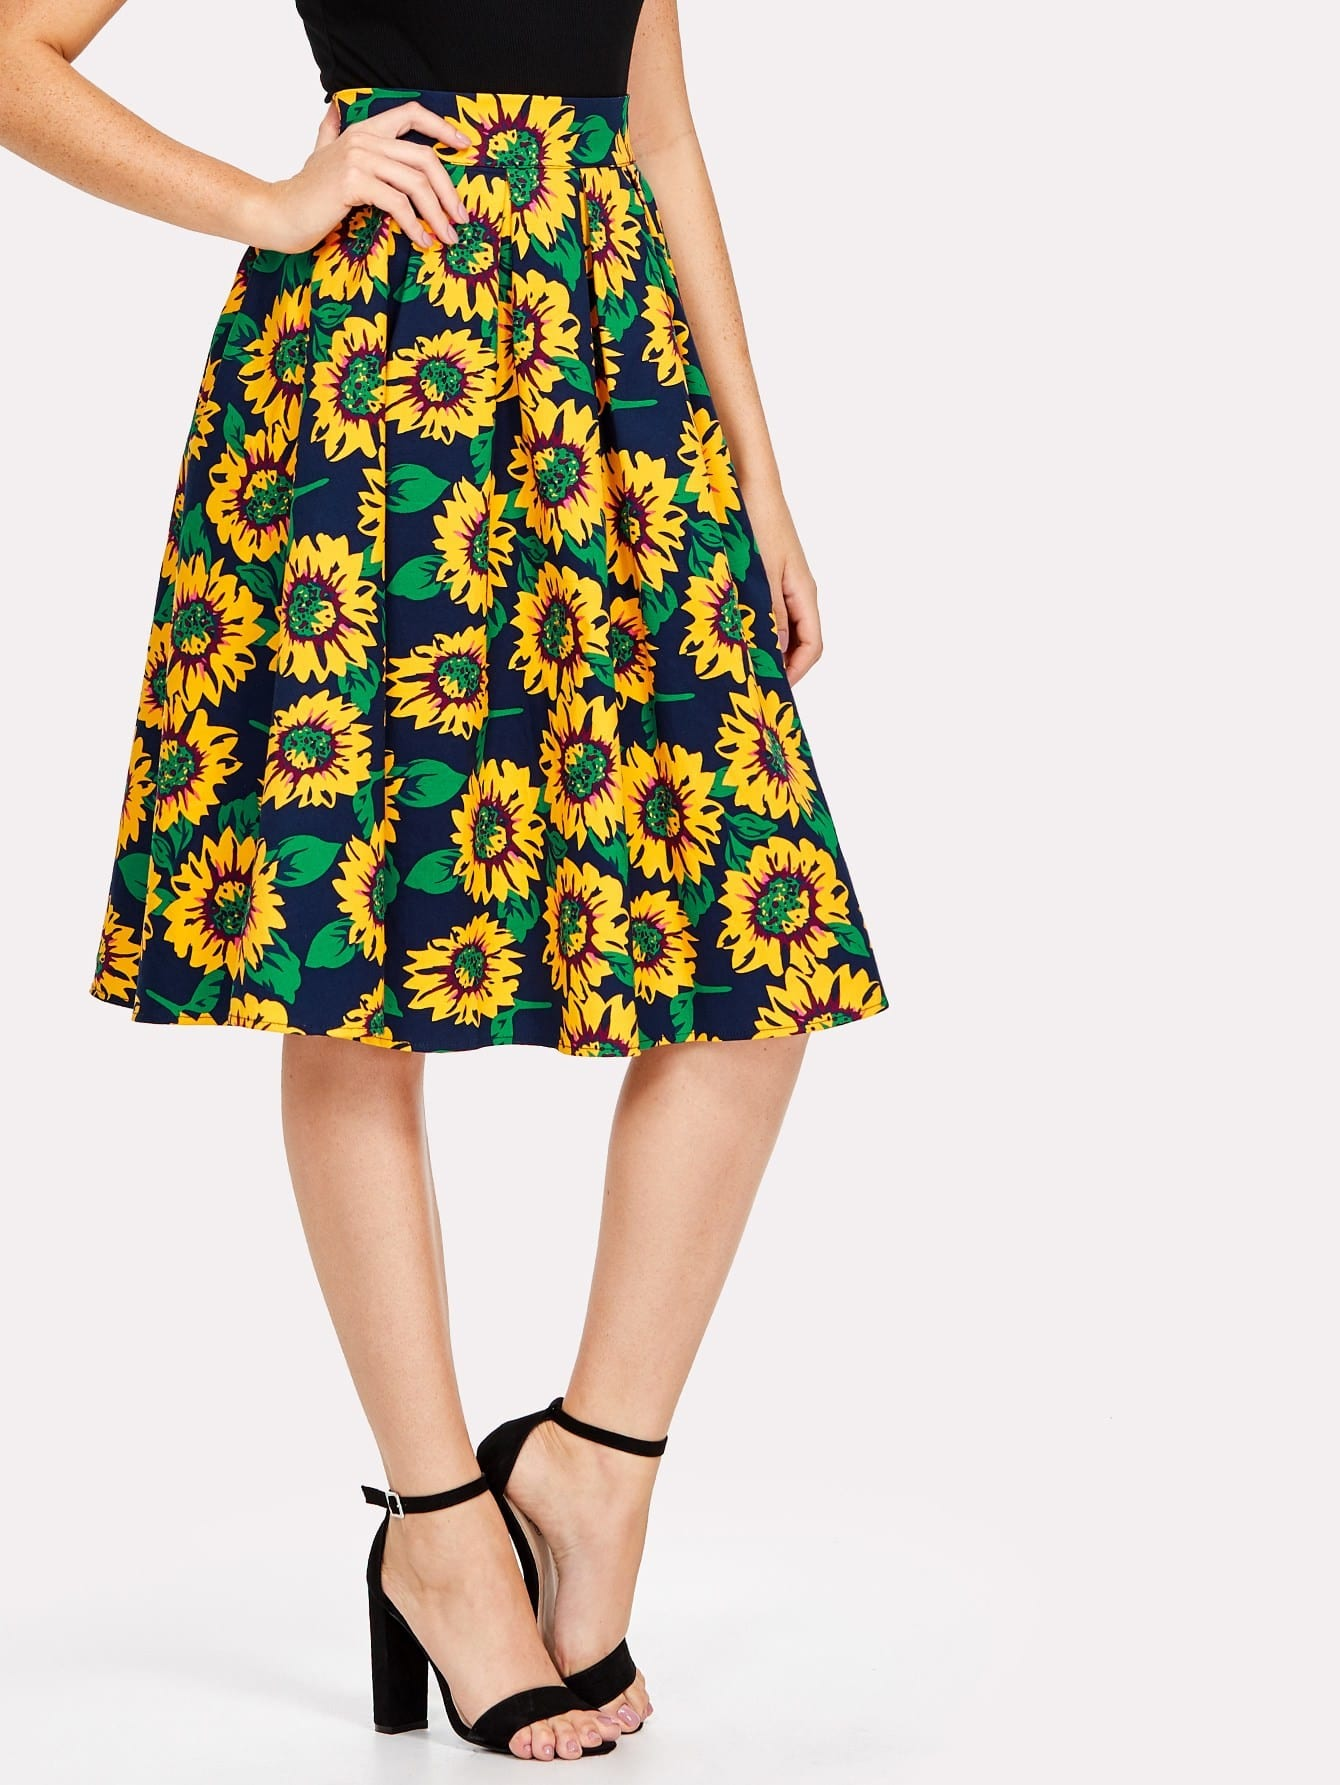 Random Sunflowers Print Skirt random sunflowers print skirt